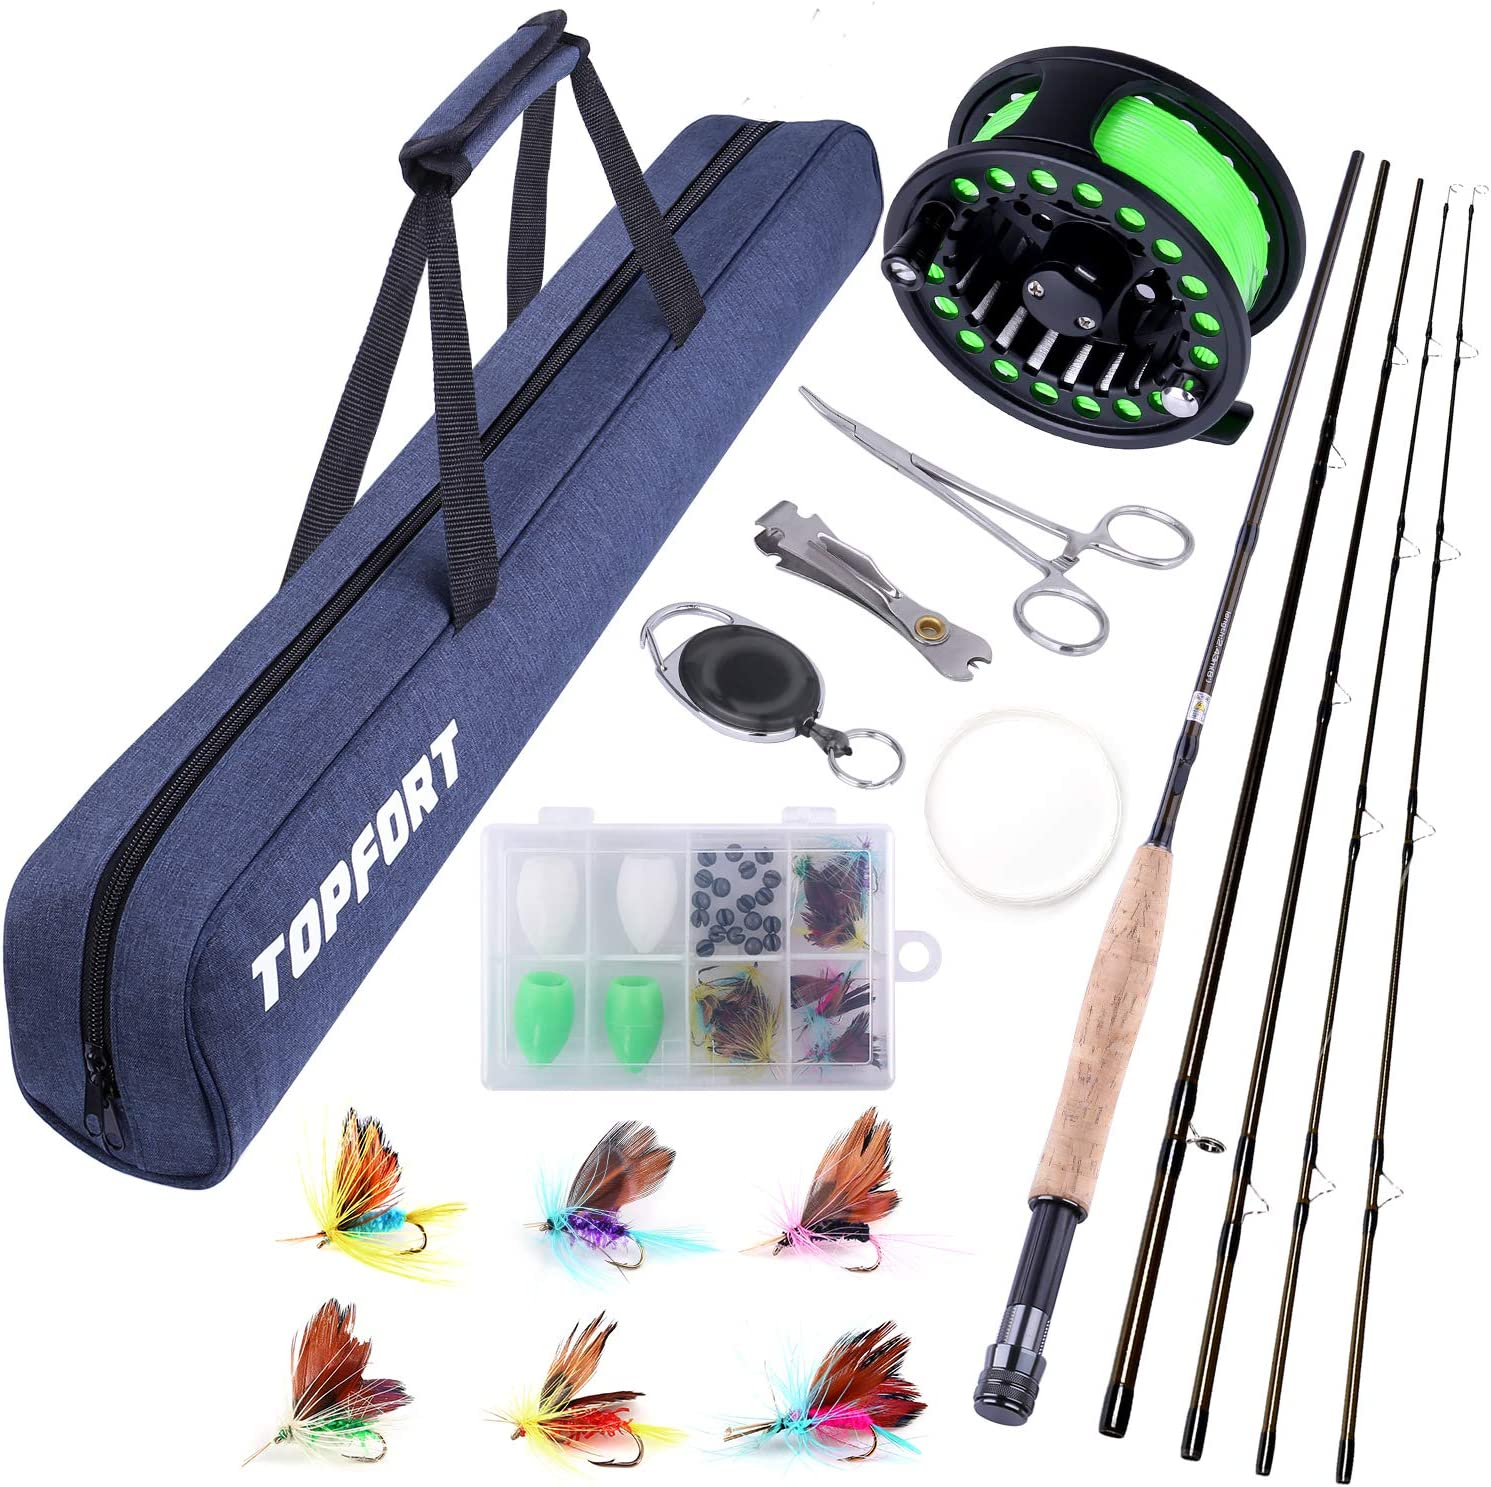 Amazon Com Topfort Fly Fishing Rod And Reel Combo 4 Piece Lightweight Ultra Portable Graphite Fly Rod 5 6 Complete Starter Package With Carrier Bag Sports Outdoors